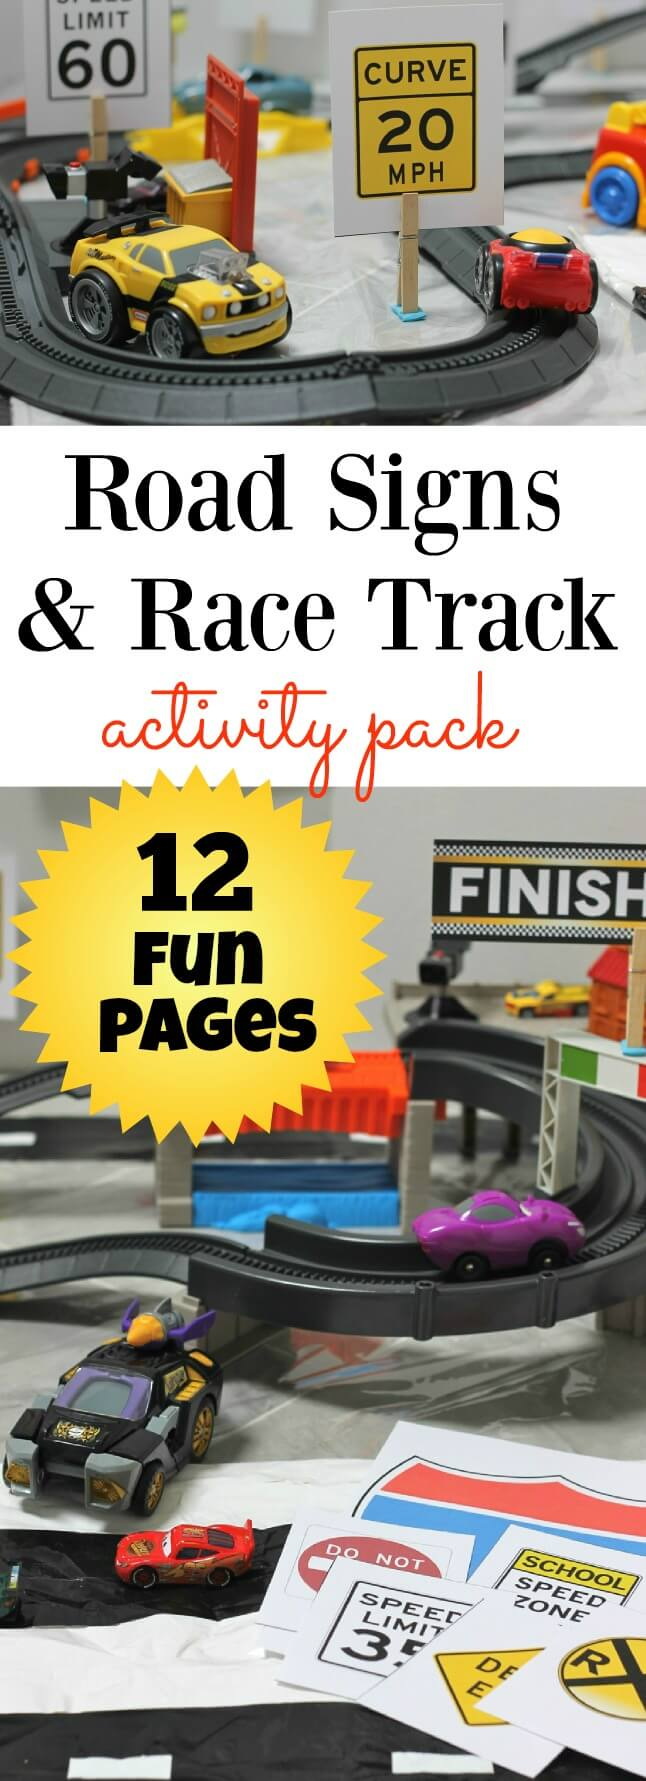 Road Signs and Race Track 12 Page Activity Pack with a fun craft for kids